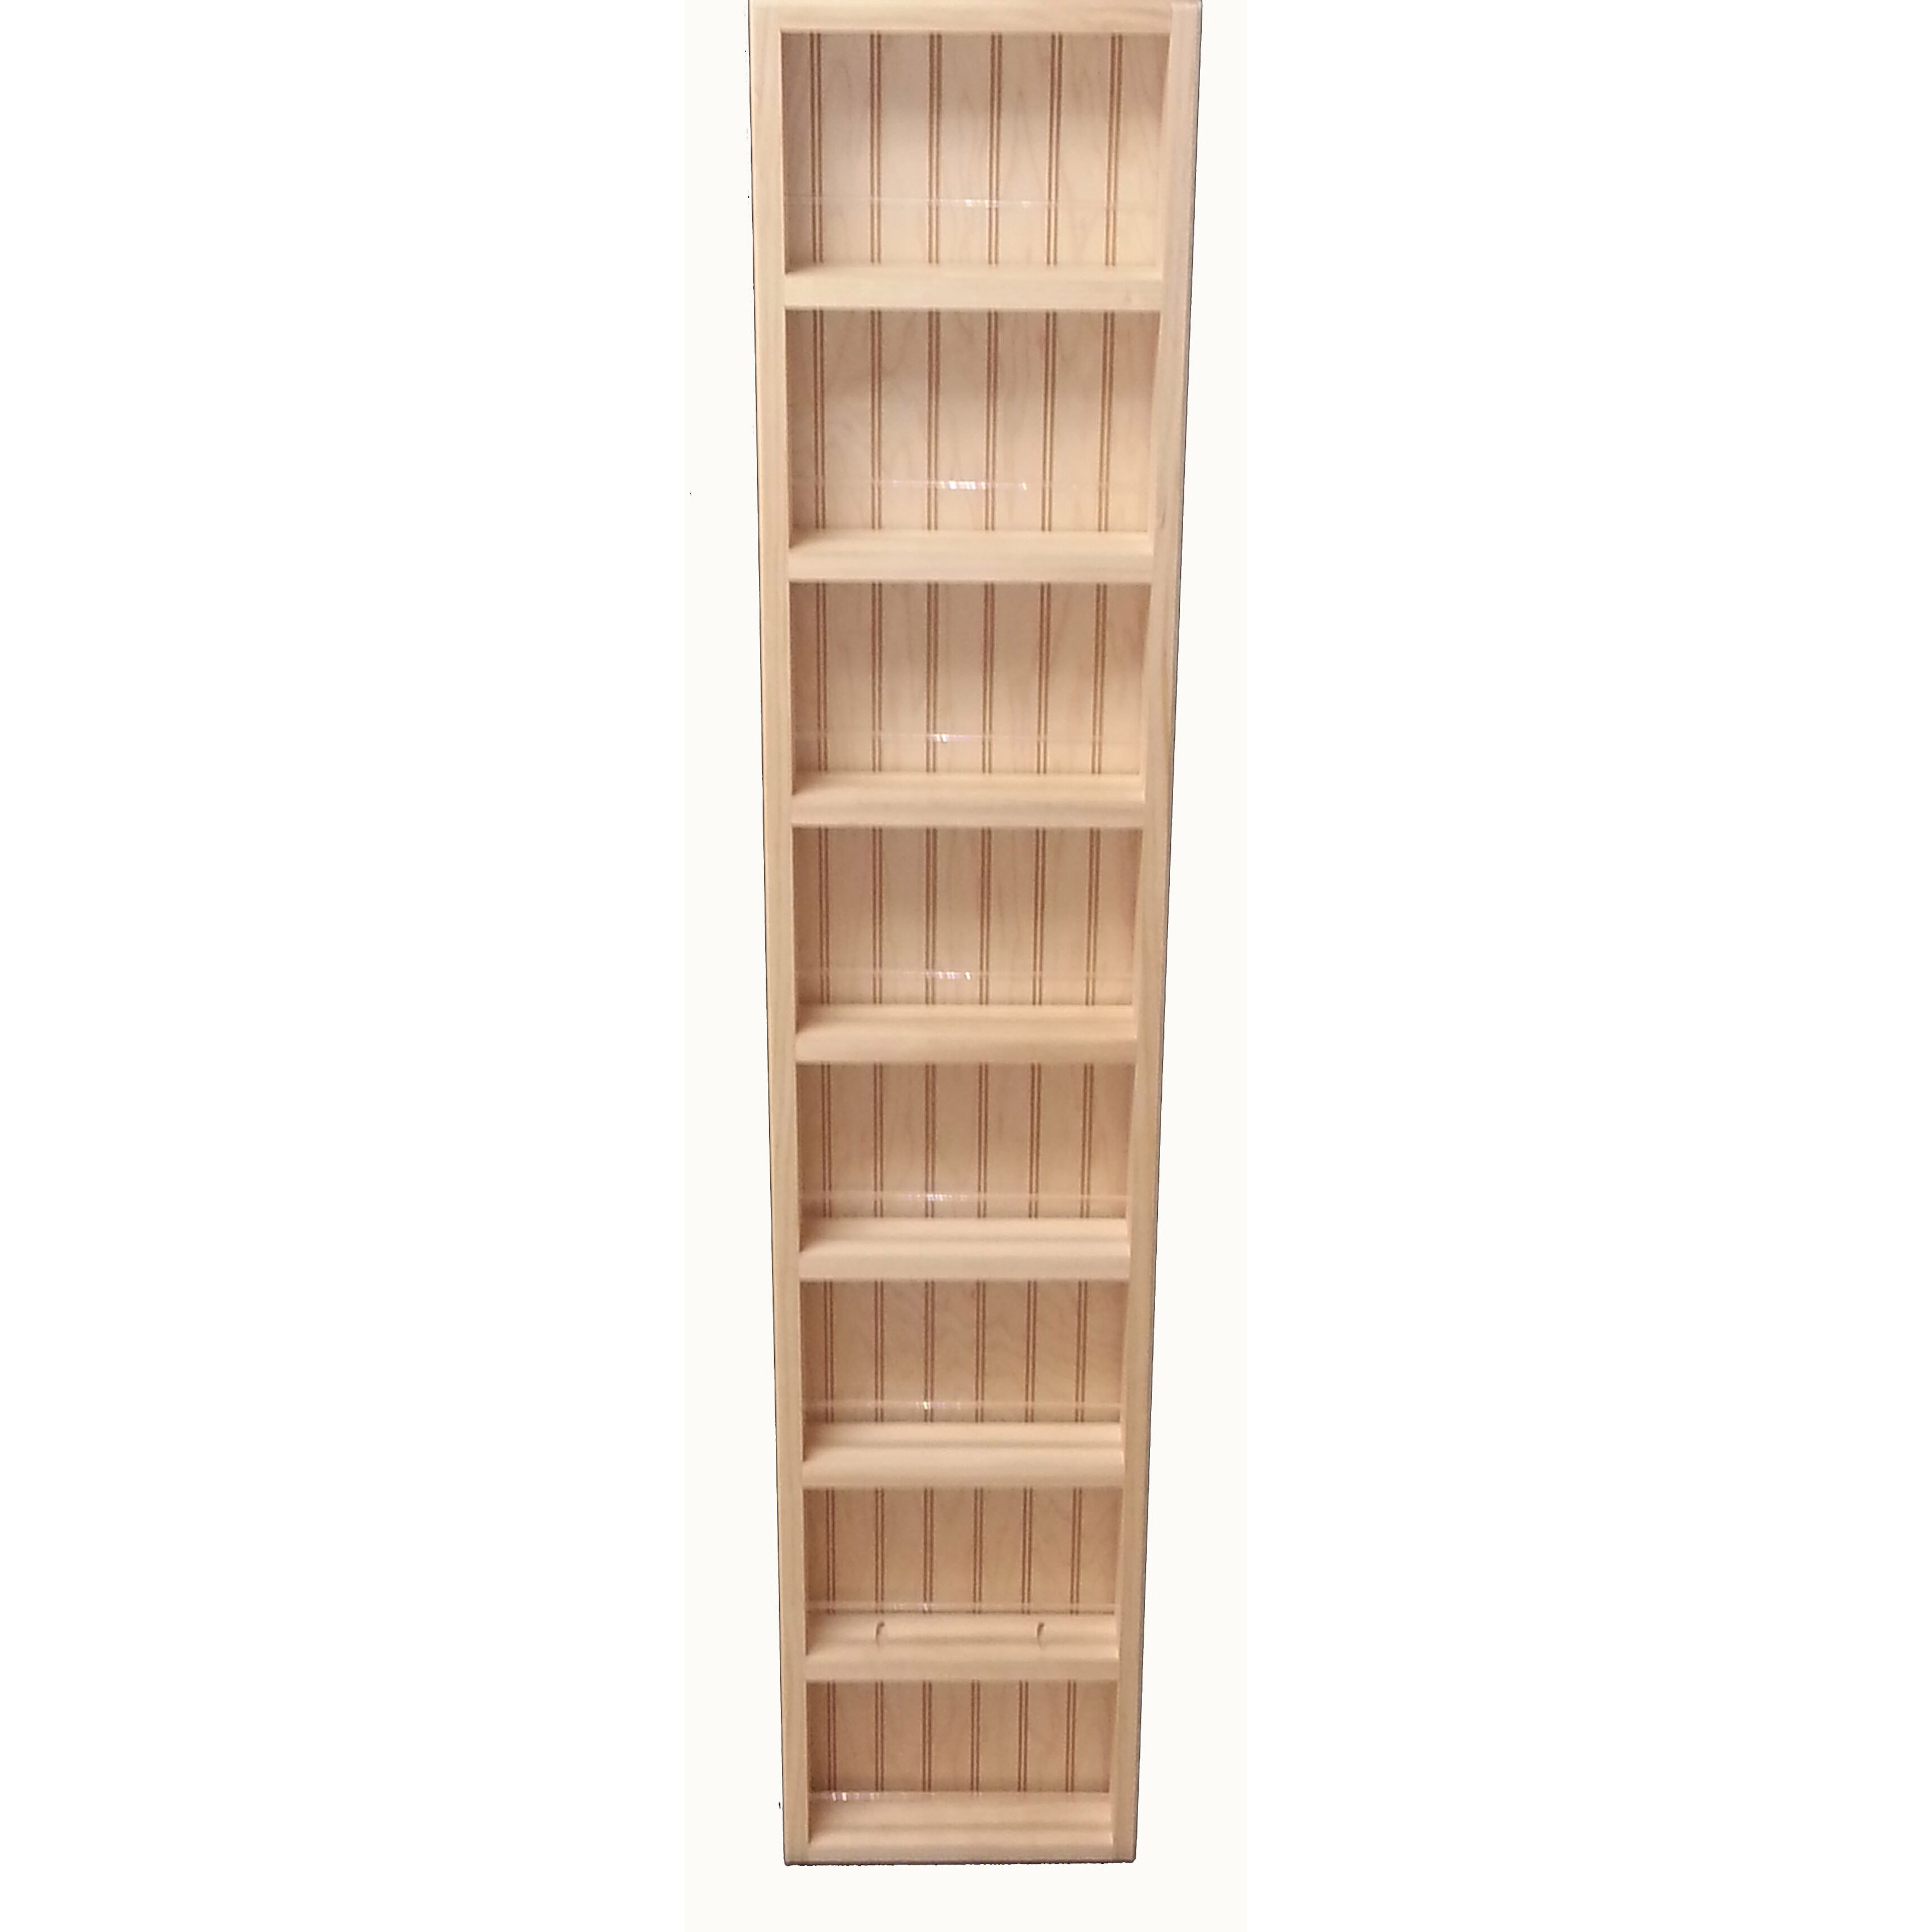 WG Wood Products Midland Premium Wall Mounted Spice Rack ...